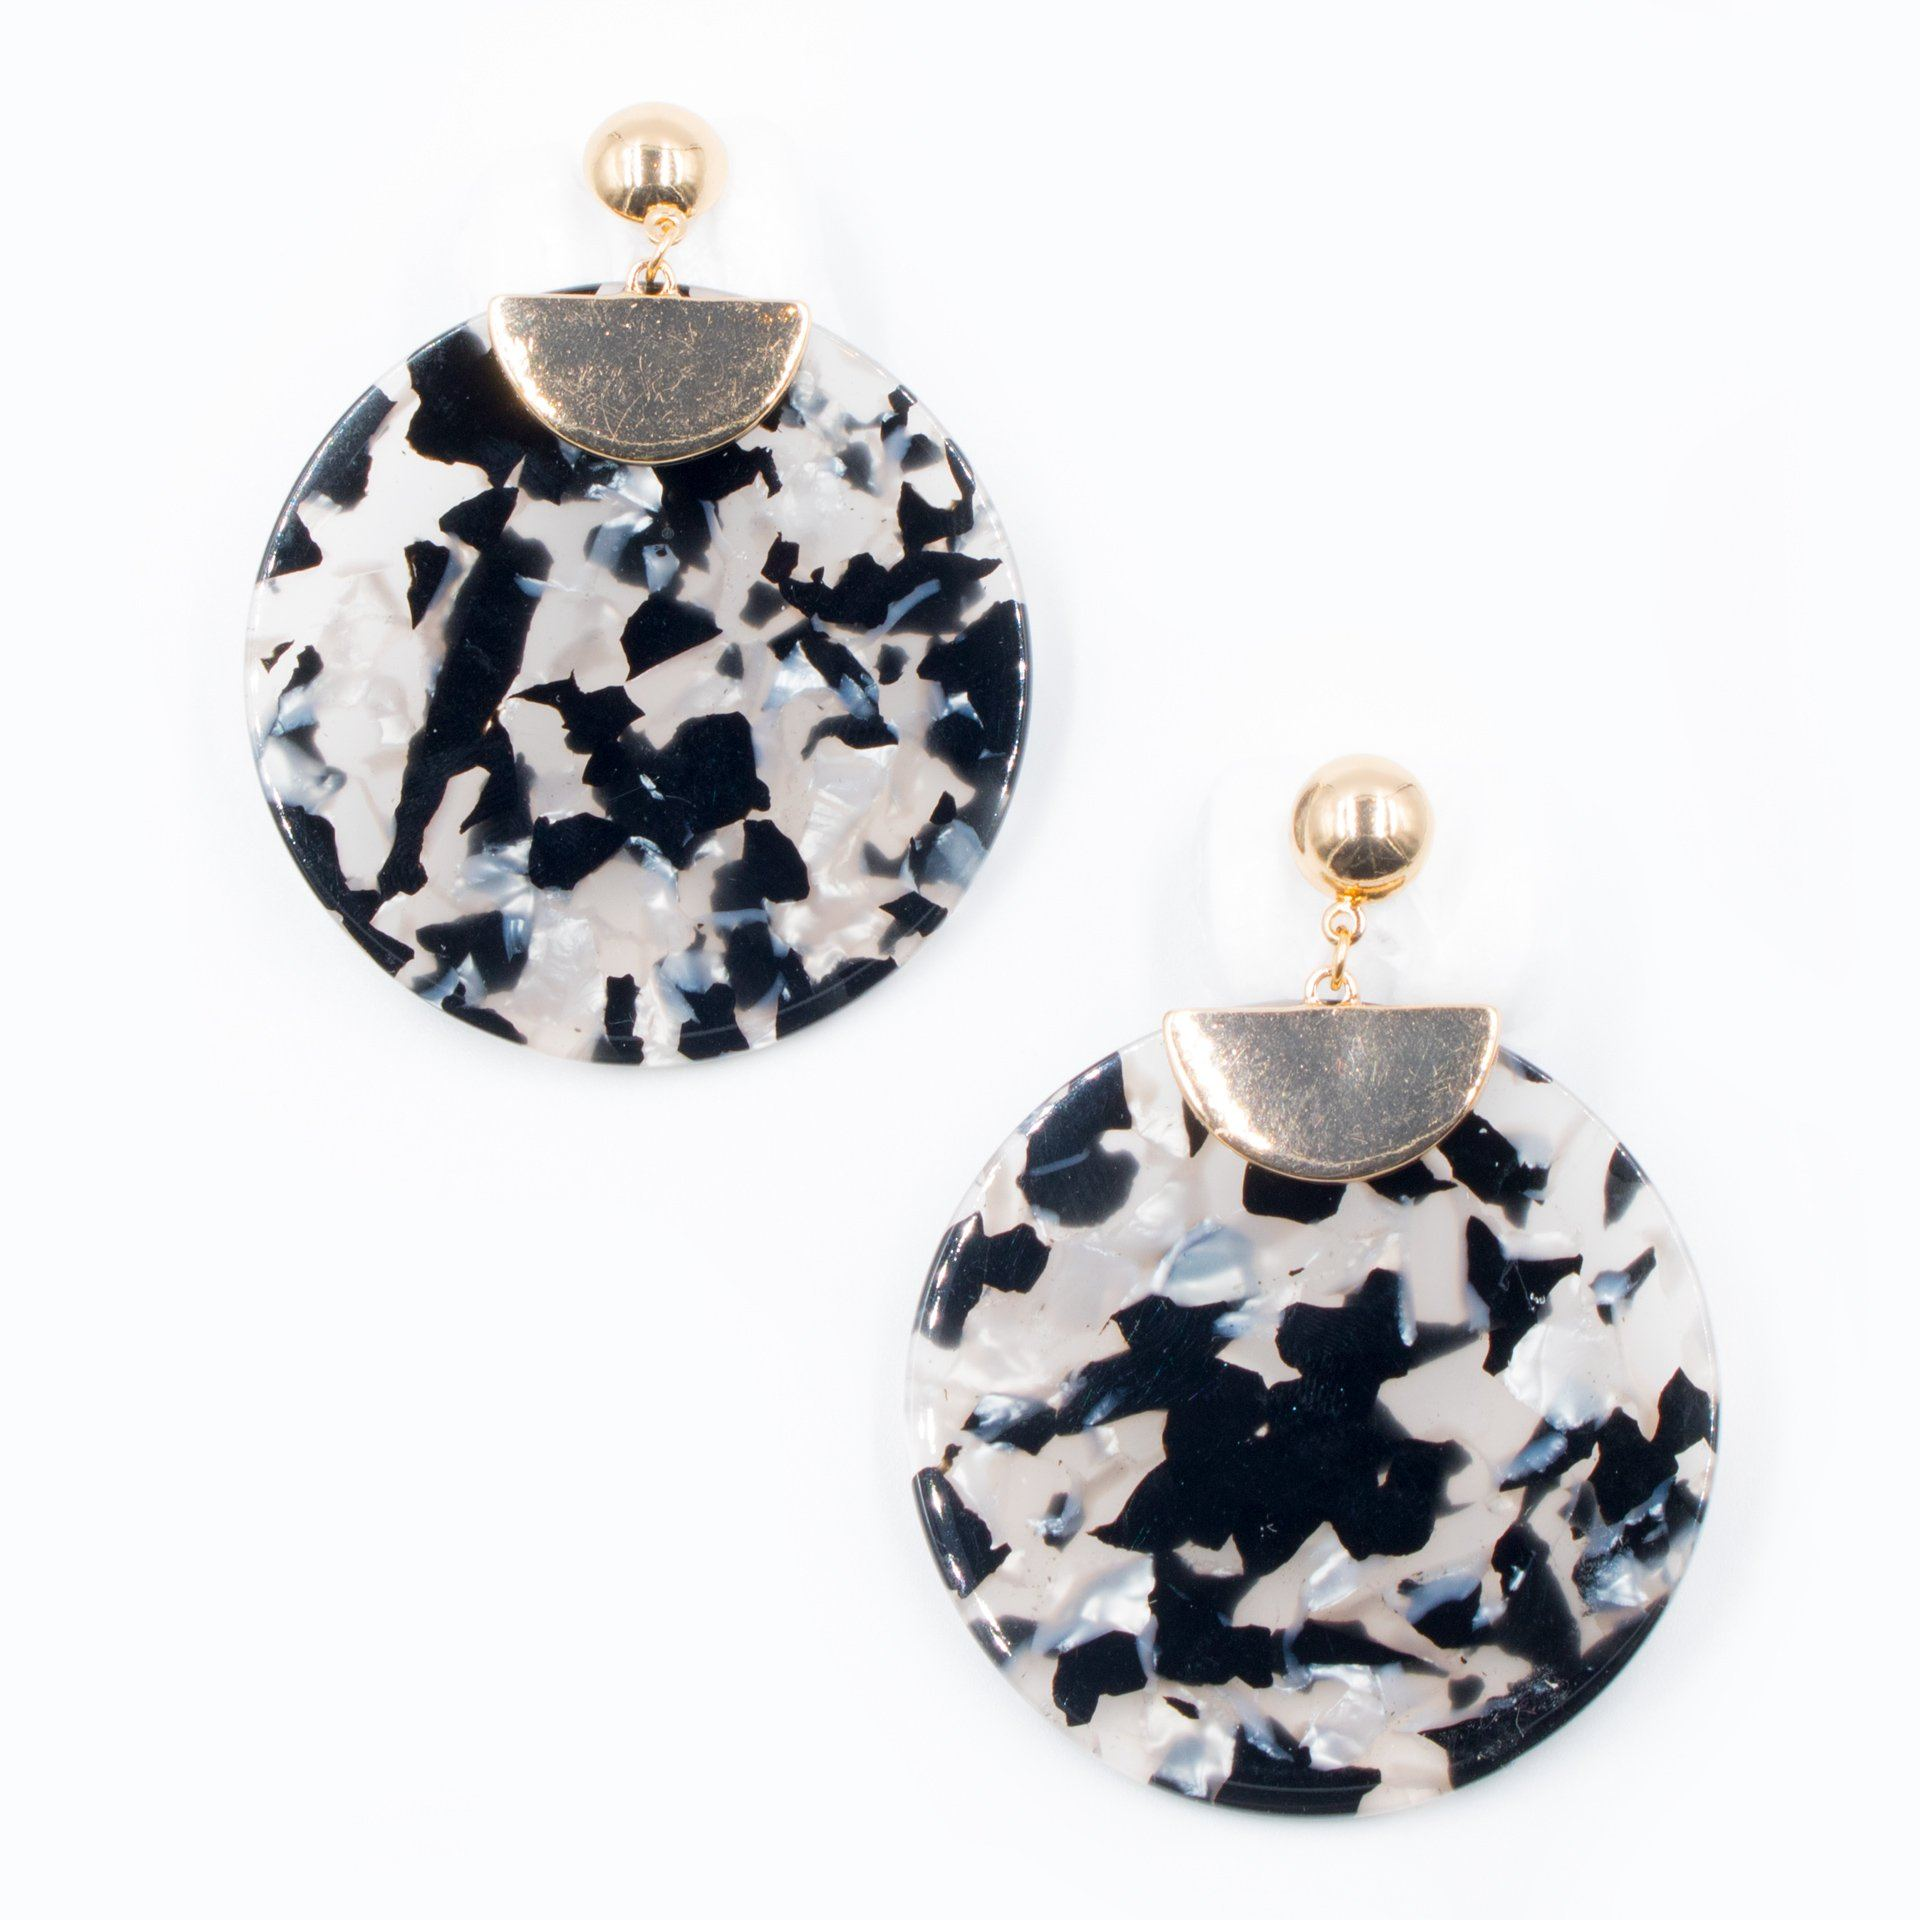 Lynn Round Marmol Statement Earrings - Arlo and Arrows